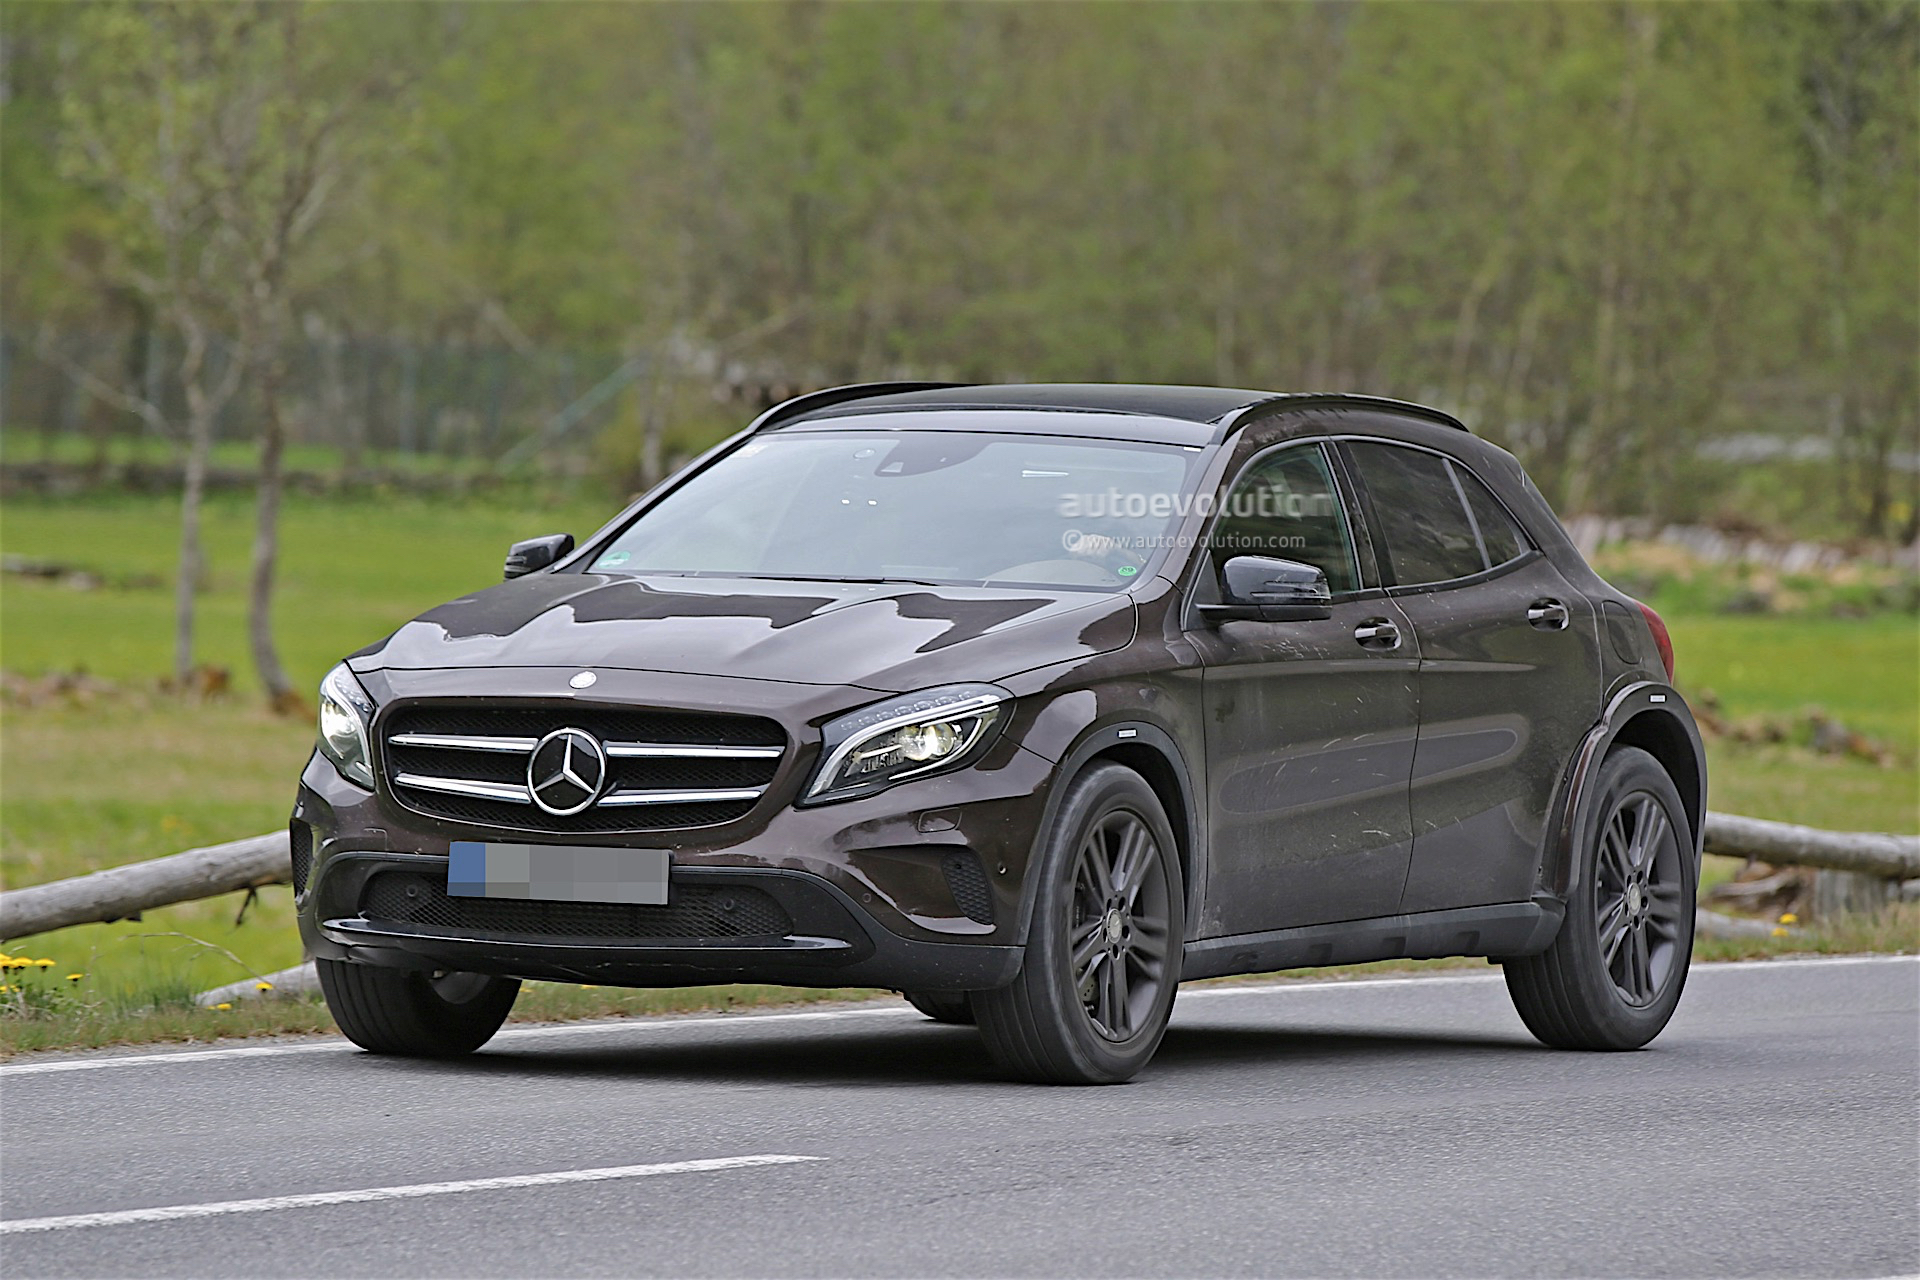 Mercedes Benz Is Testing Upcoming Glb Spyshots Reveal